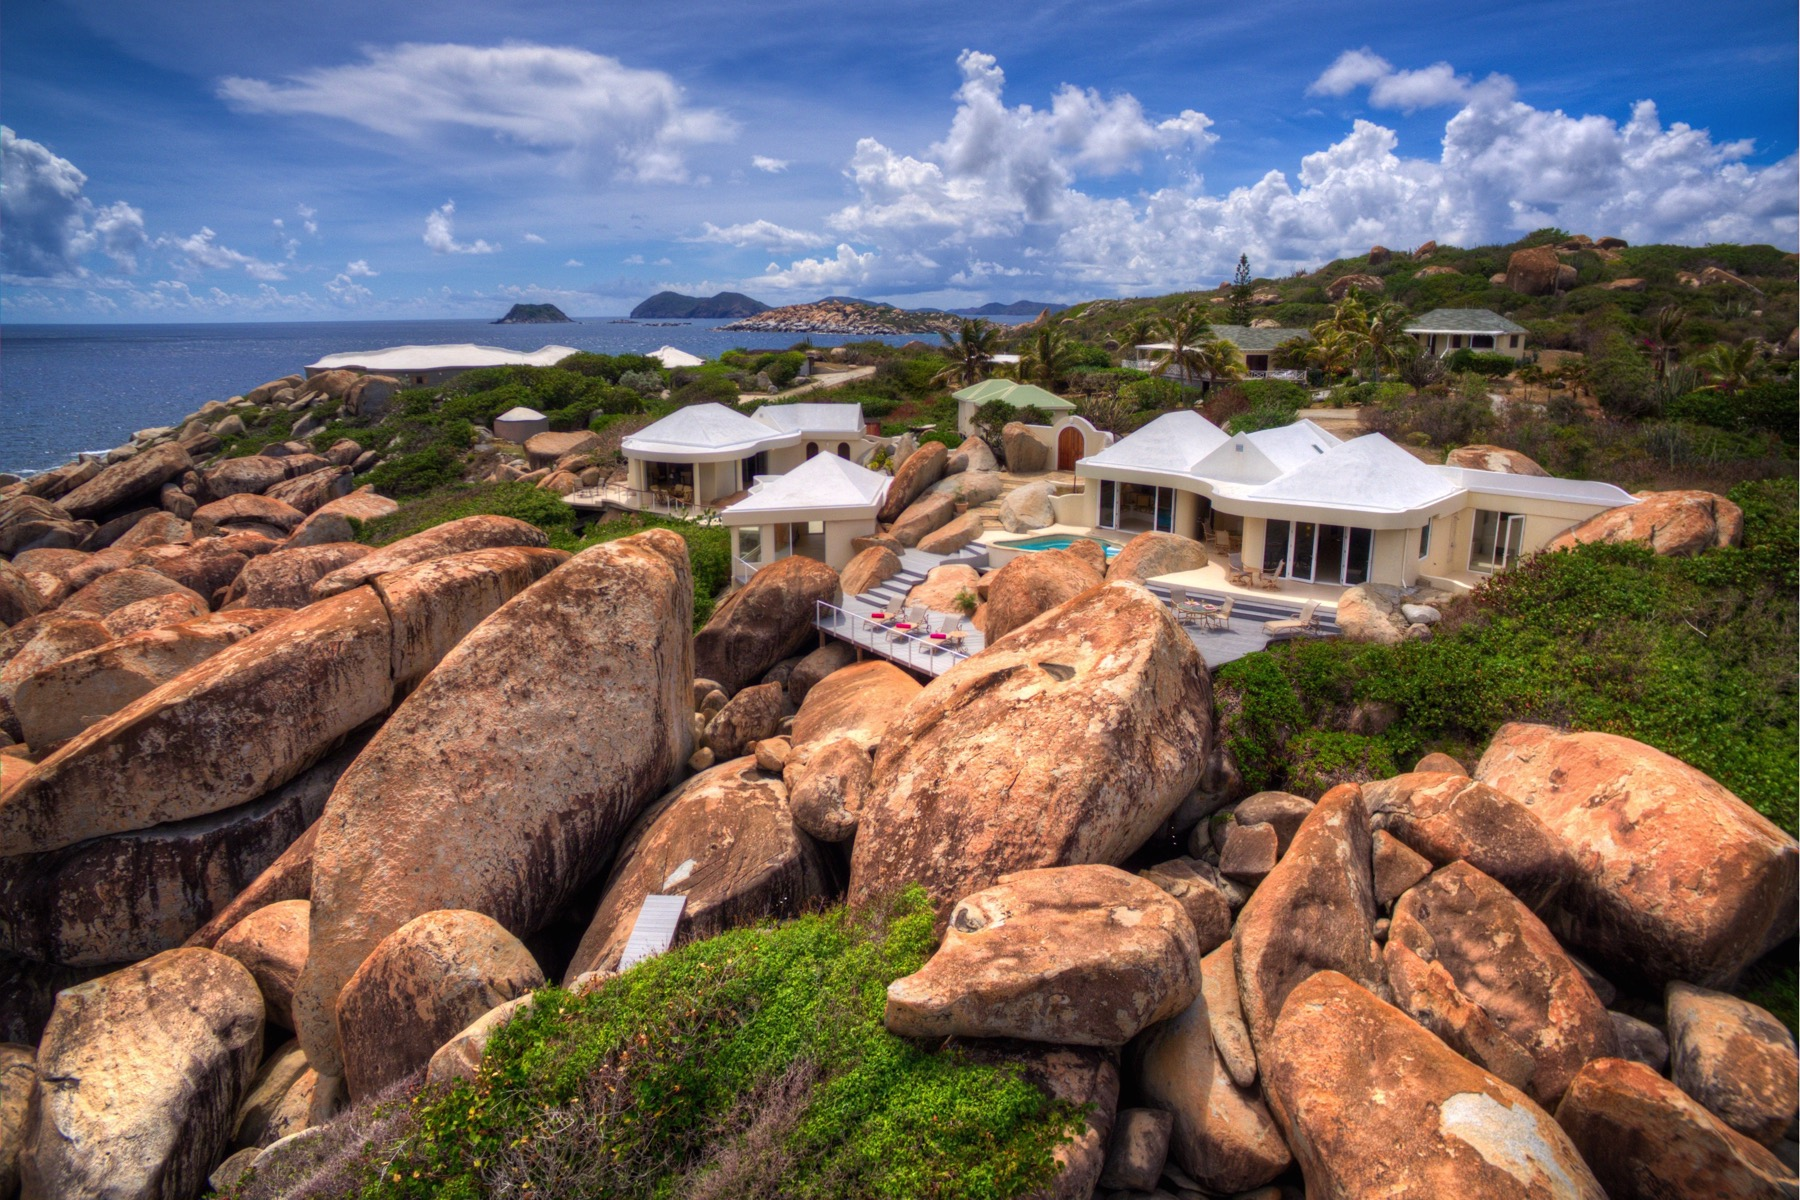 Waters-edge-crooks-bay-virgin-gorda-bvi-01